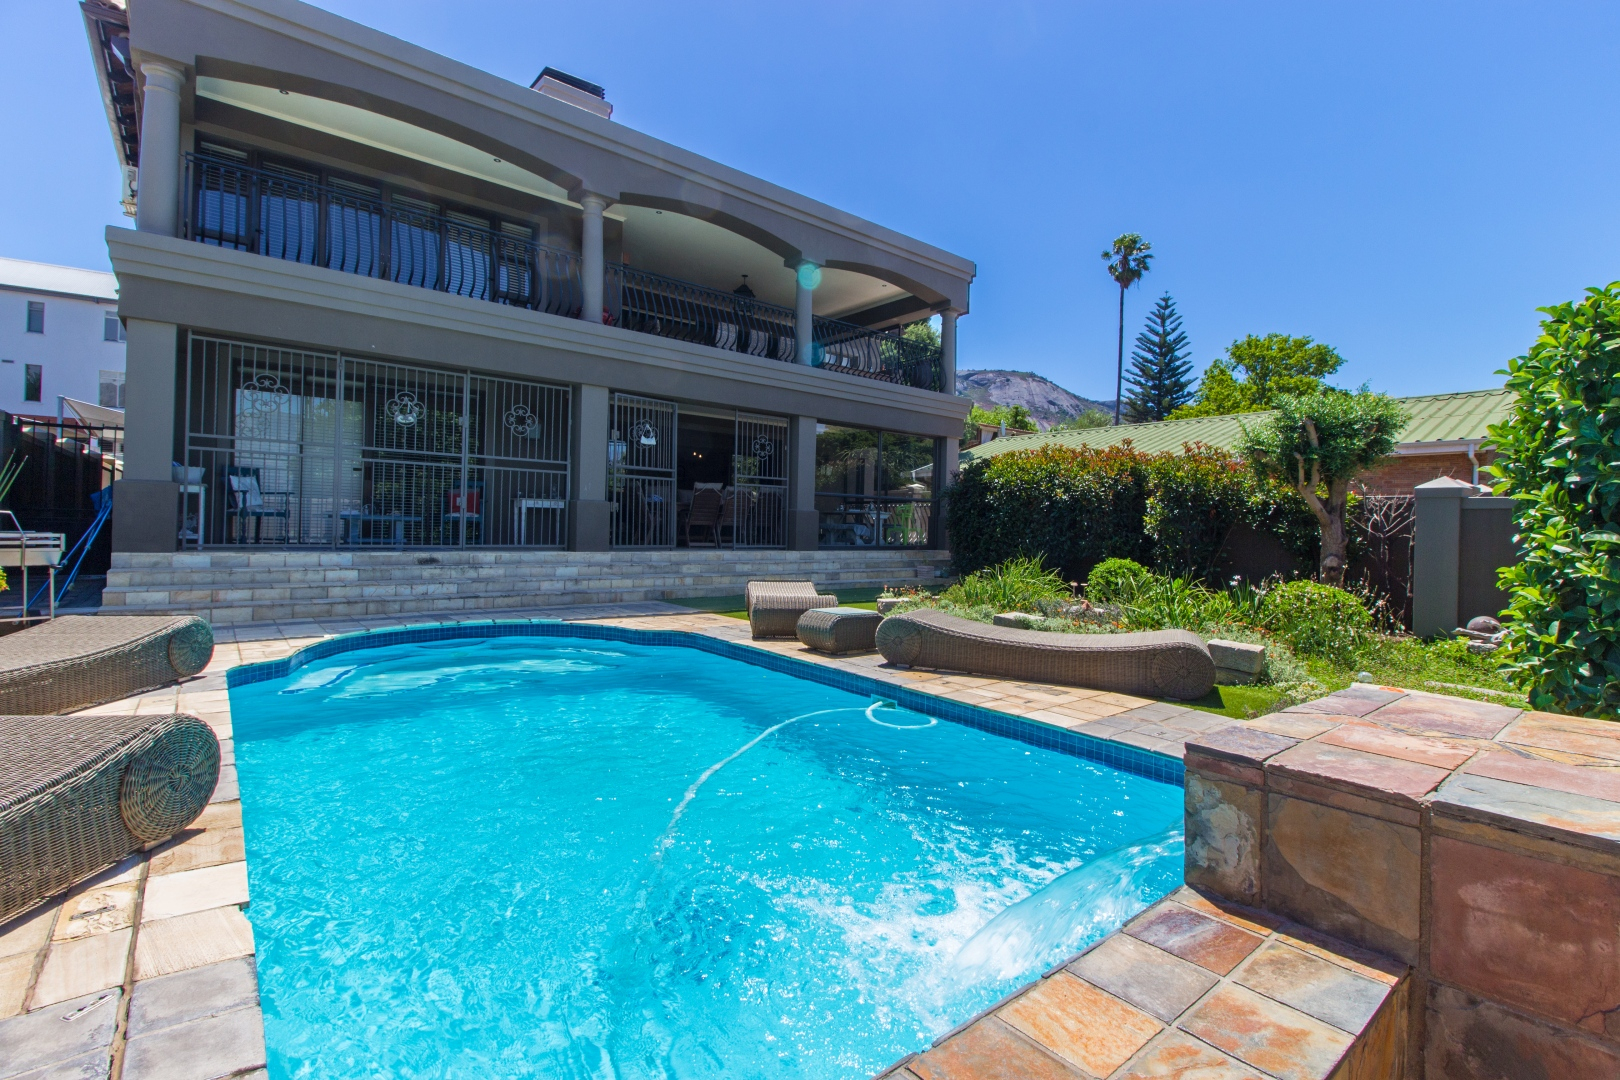 4 Bedroom House For Sale in Paarl South